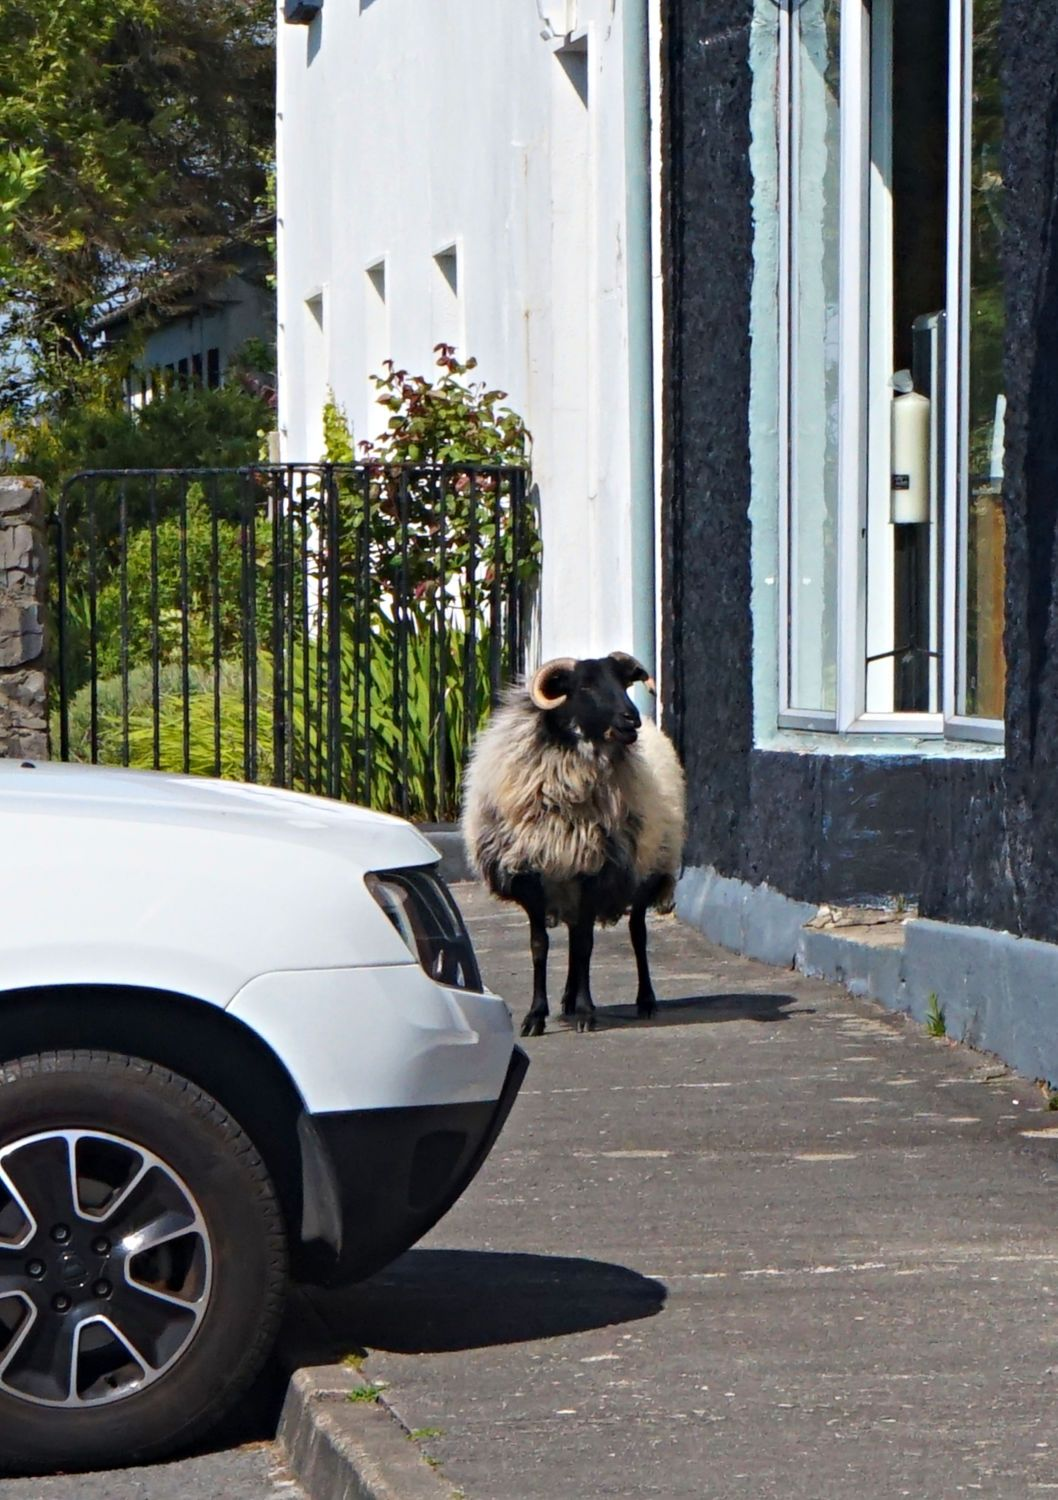 Sheep administrator waiting outside craftshop. He wants in to check that all sheepskins for sale came from sheep that were carrying donor cards at the time of donation. (NB May also apply to squirrels and artists' brushes.)